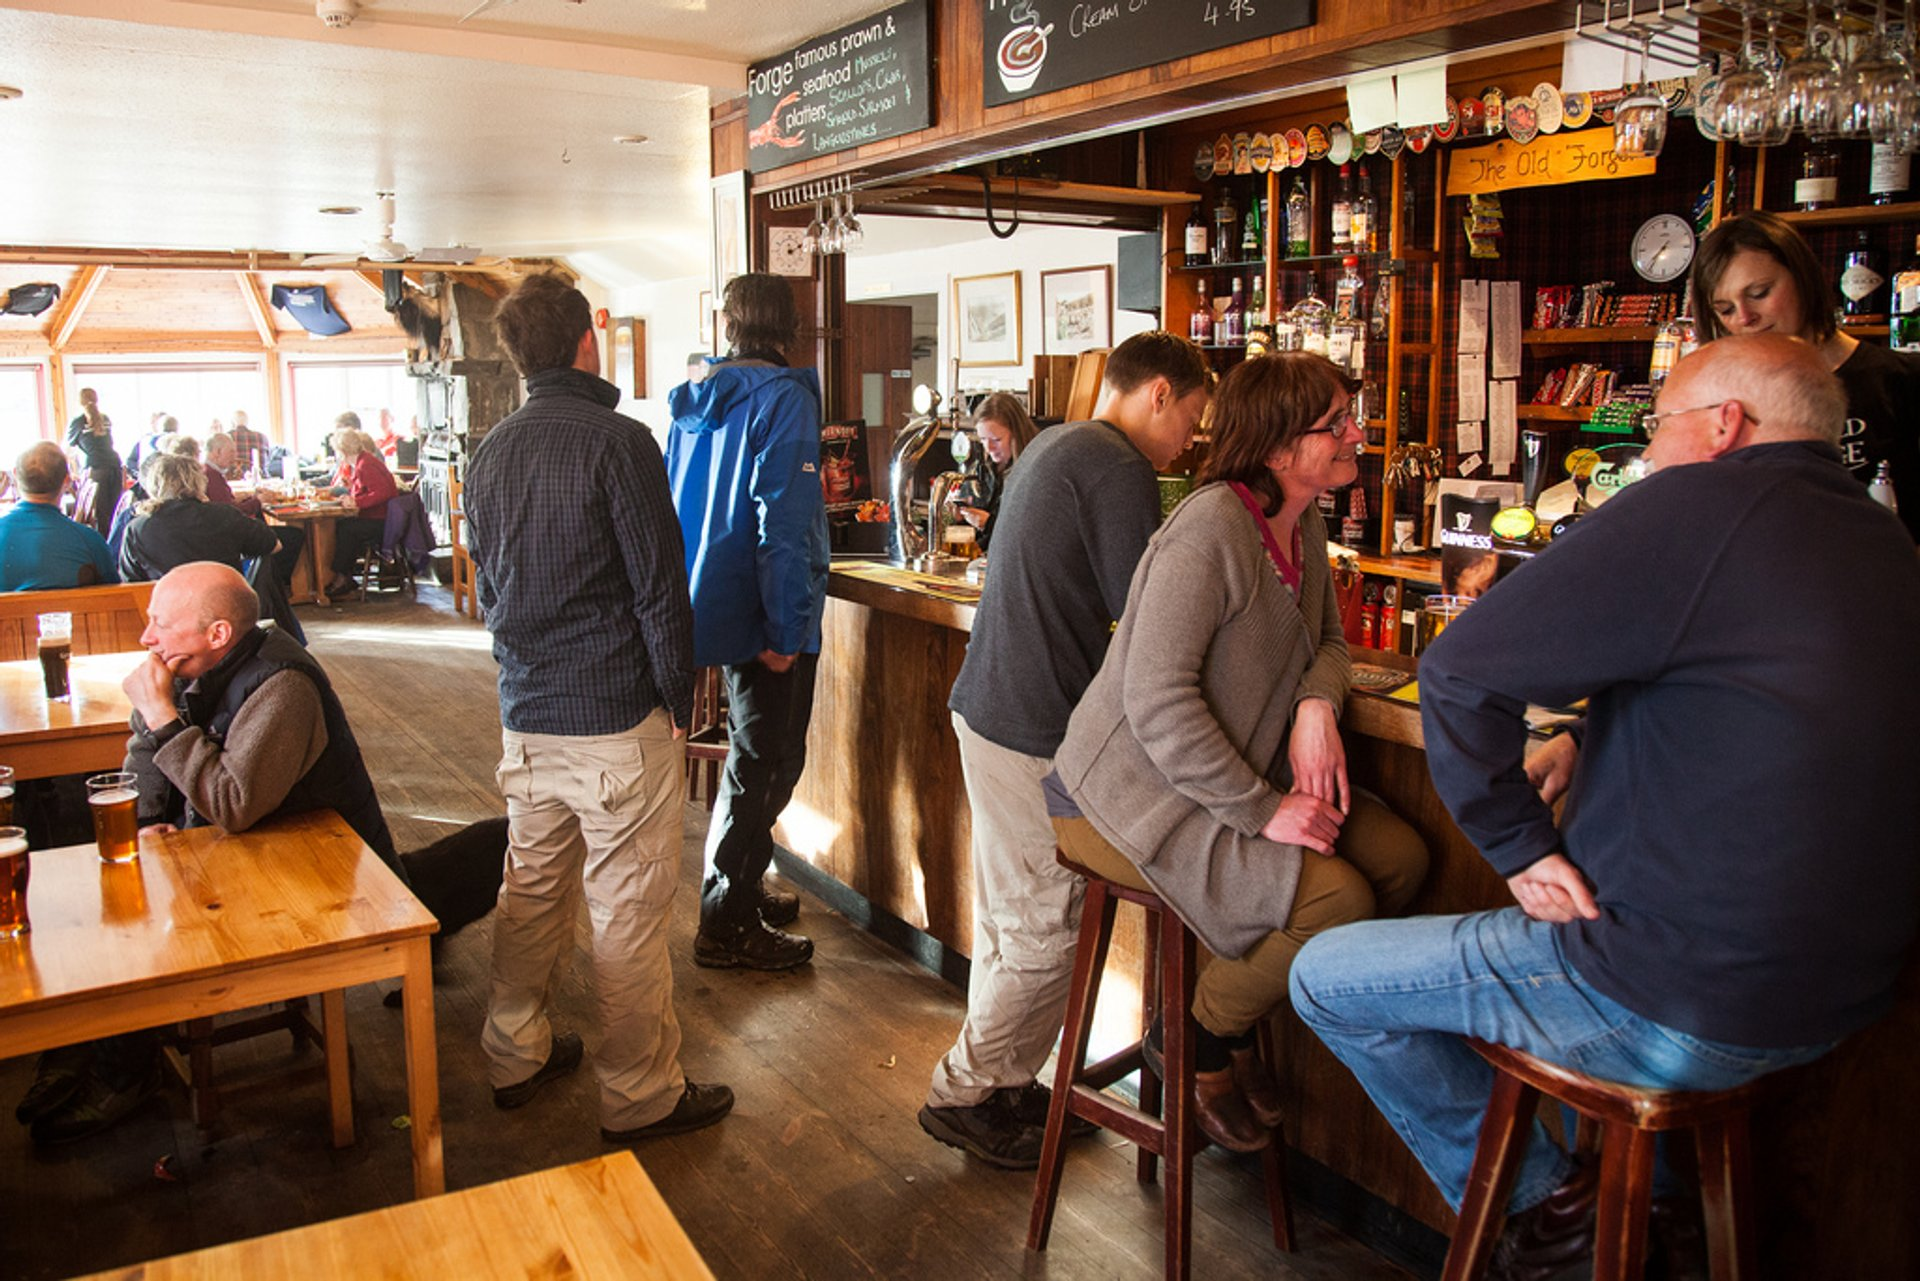 Scotland's Most Remote Pub in Scotland 2019 - Best Time